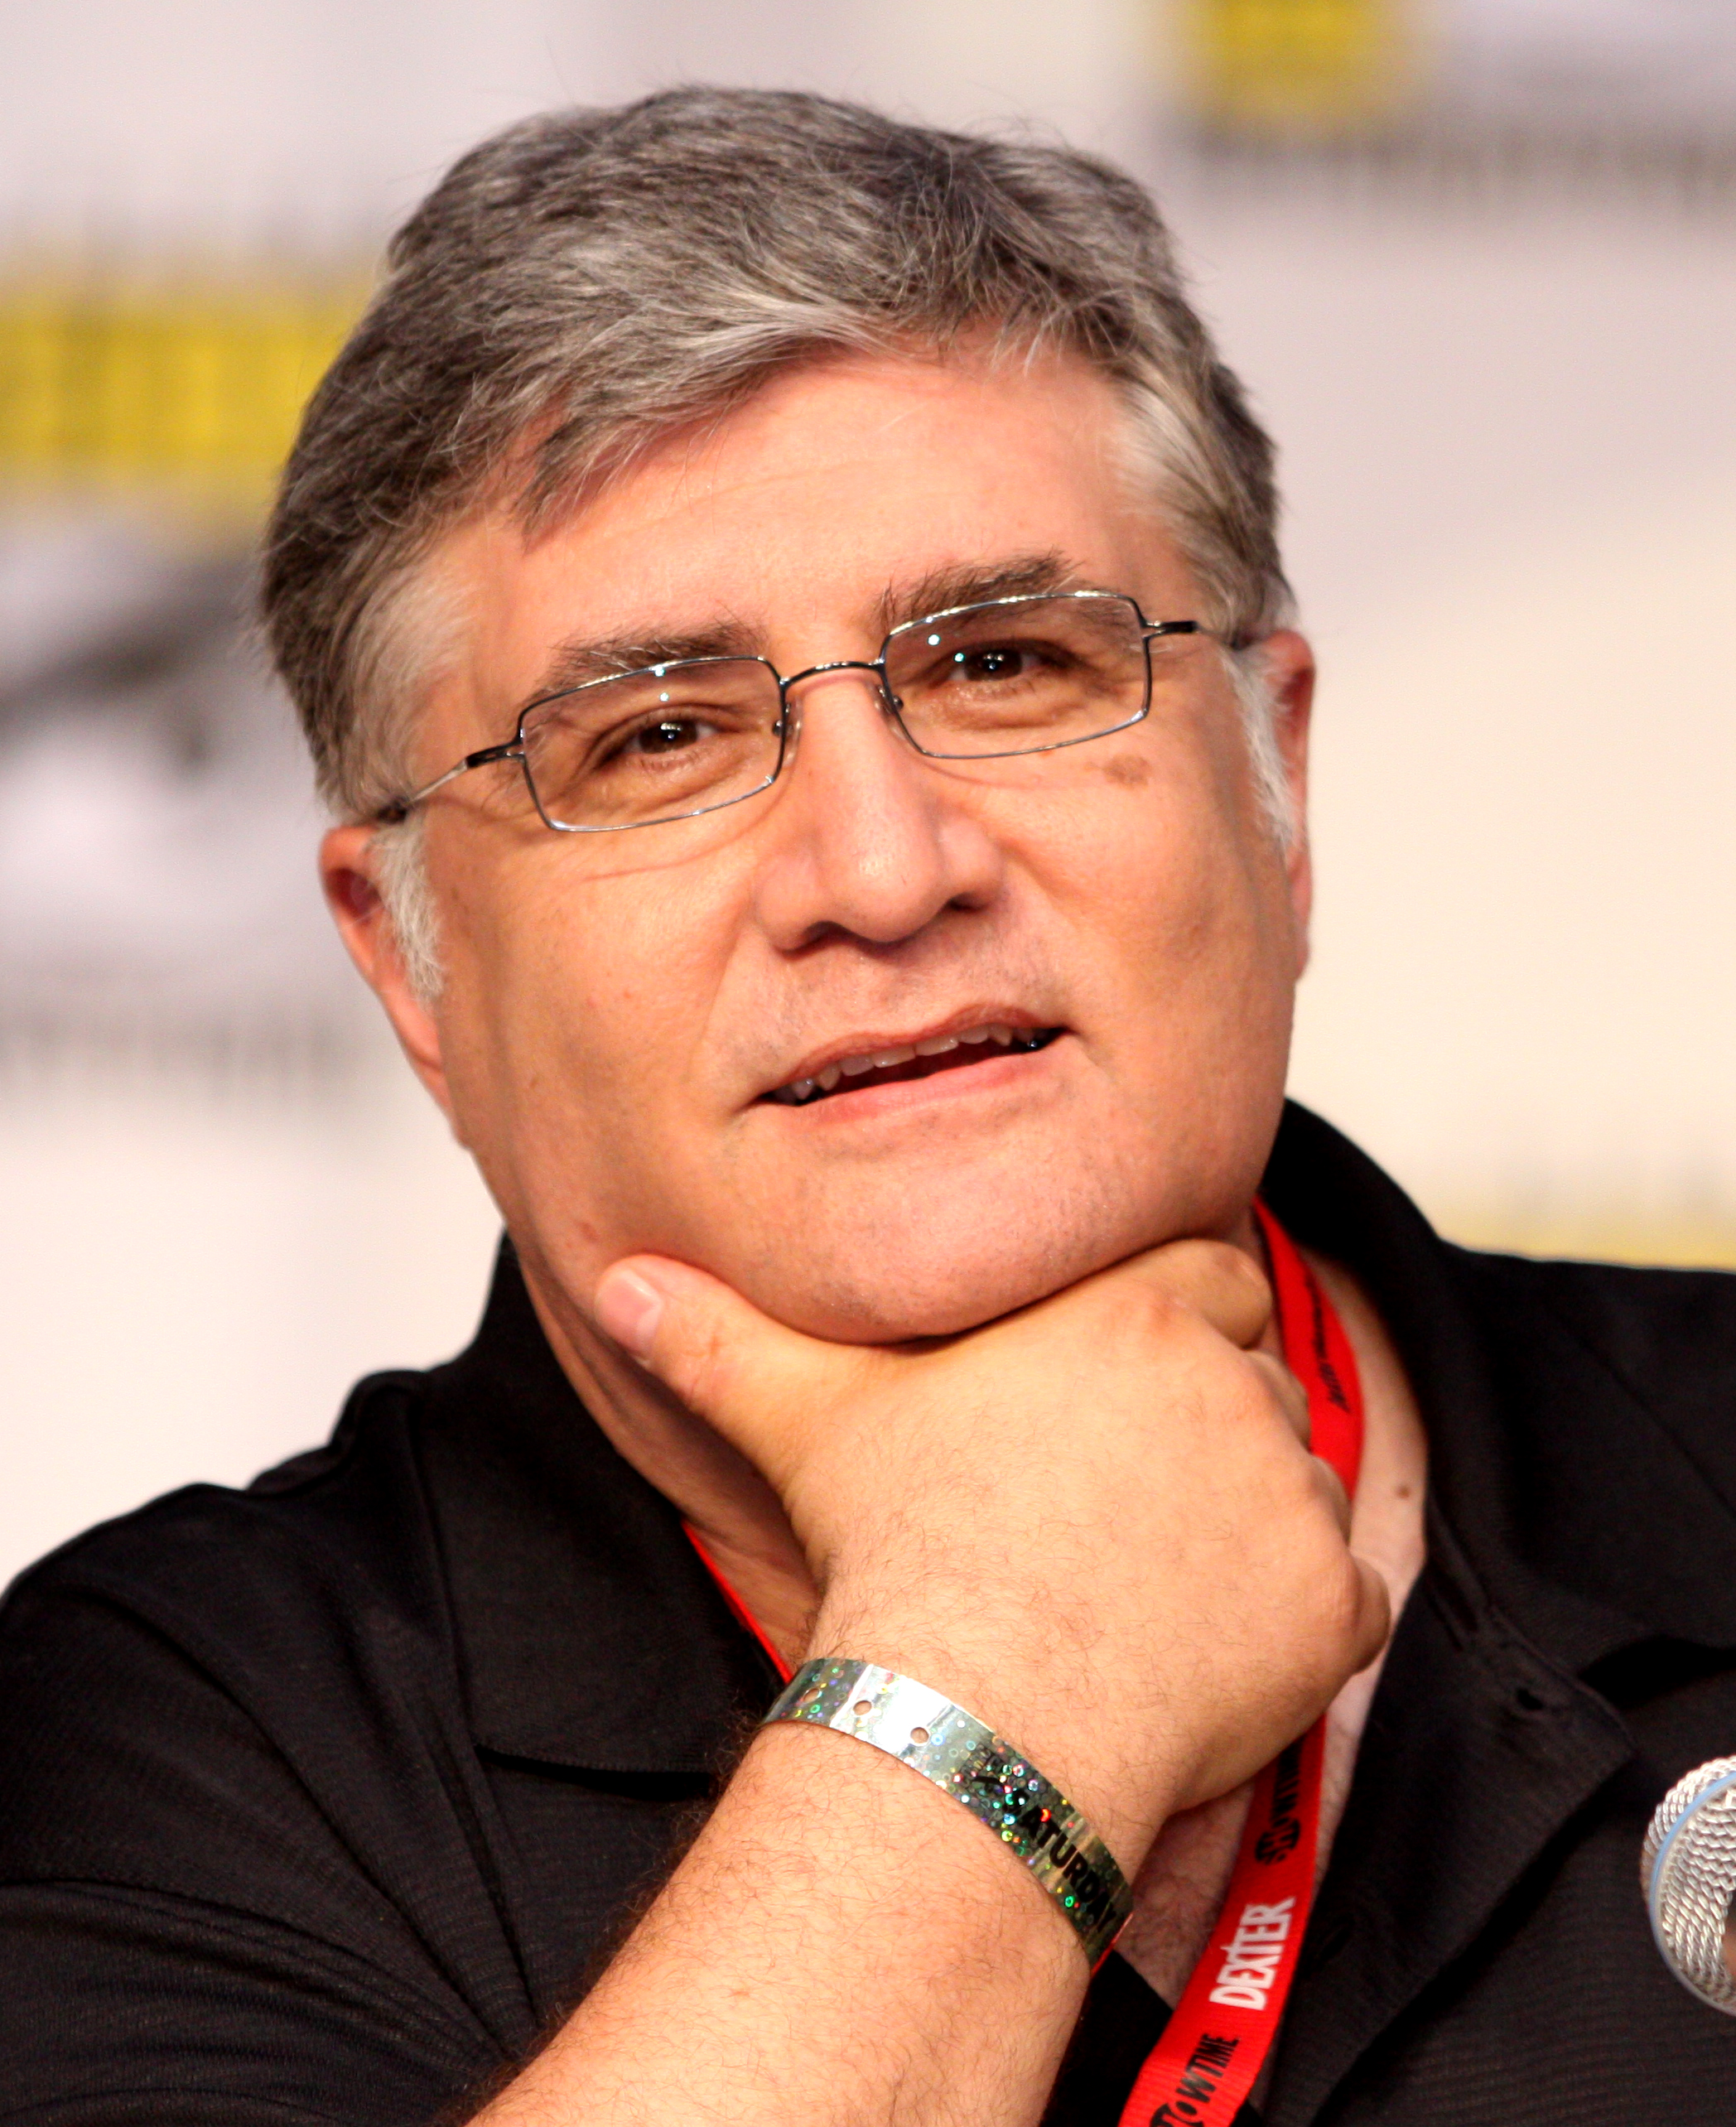 Maurice LaMarche Net Worth